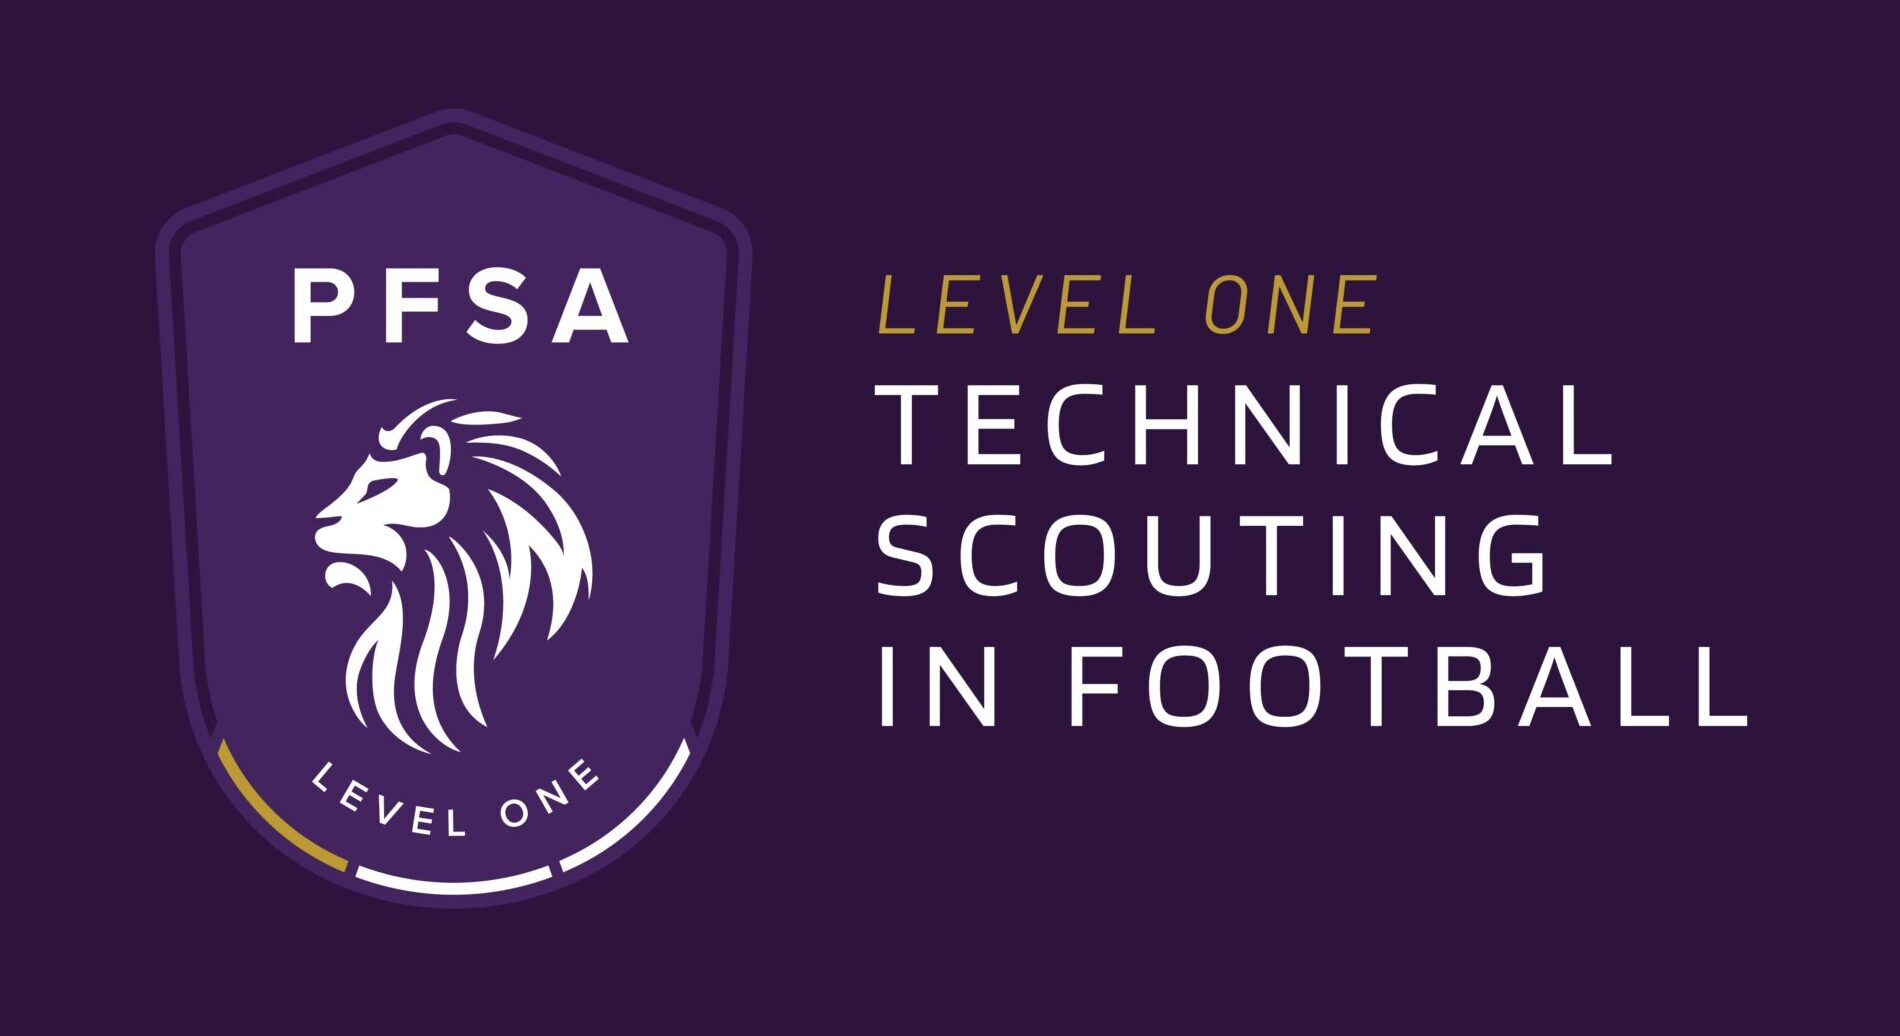 PFSA Level 1 Technical Scouting in Football